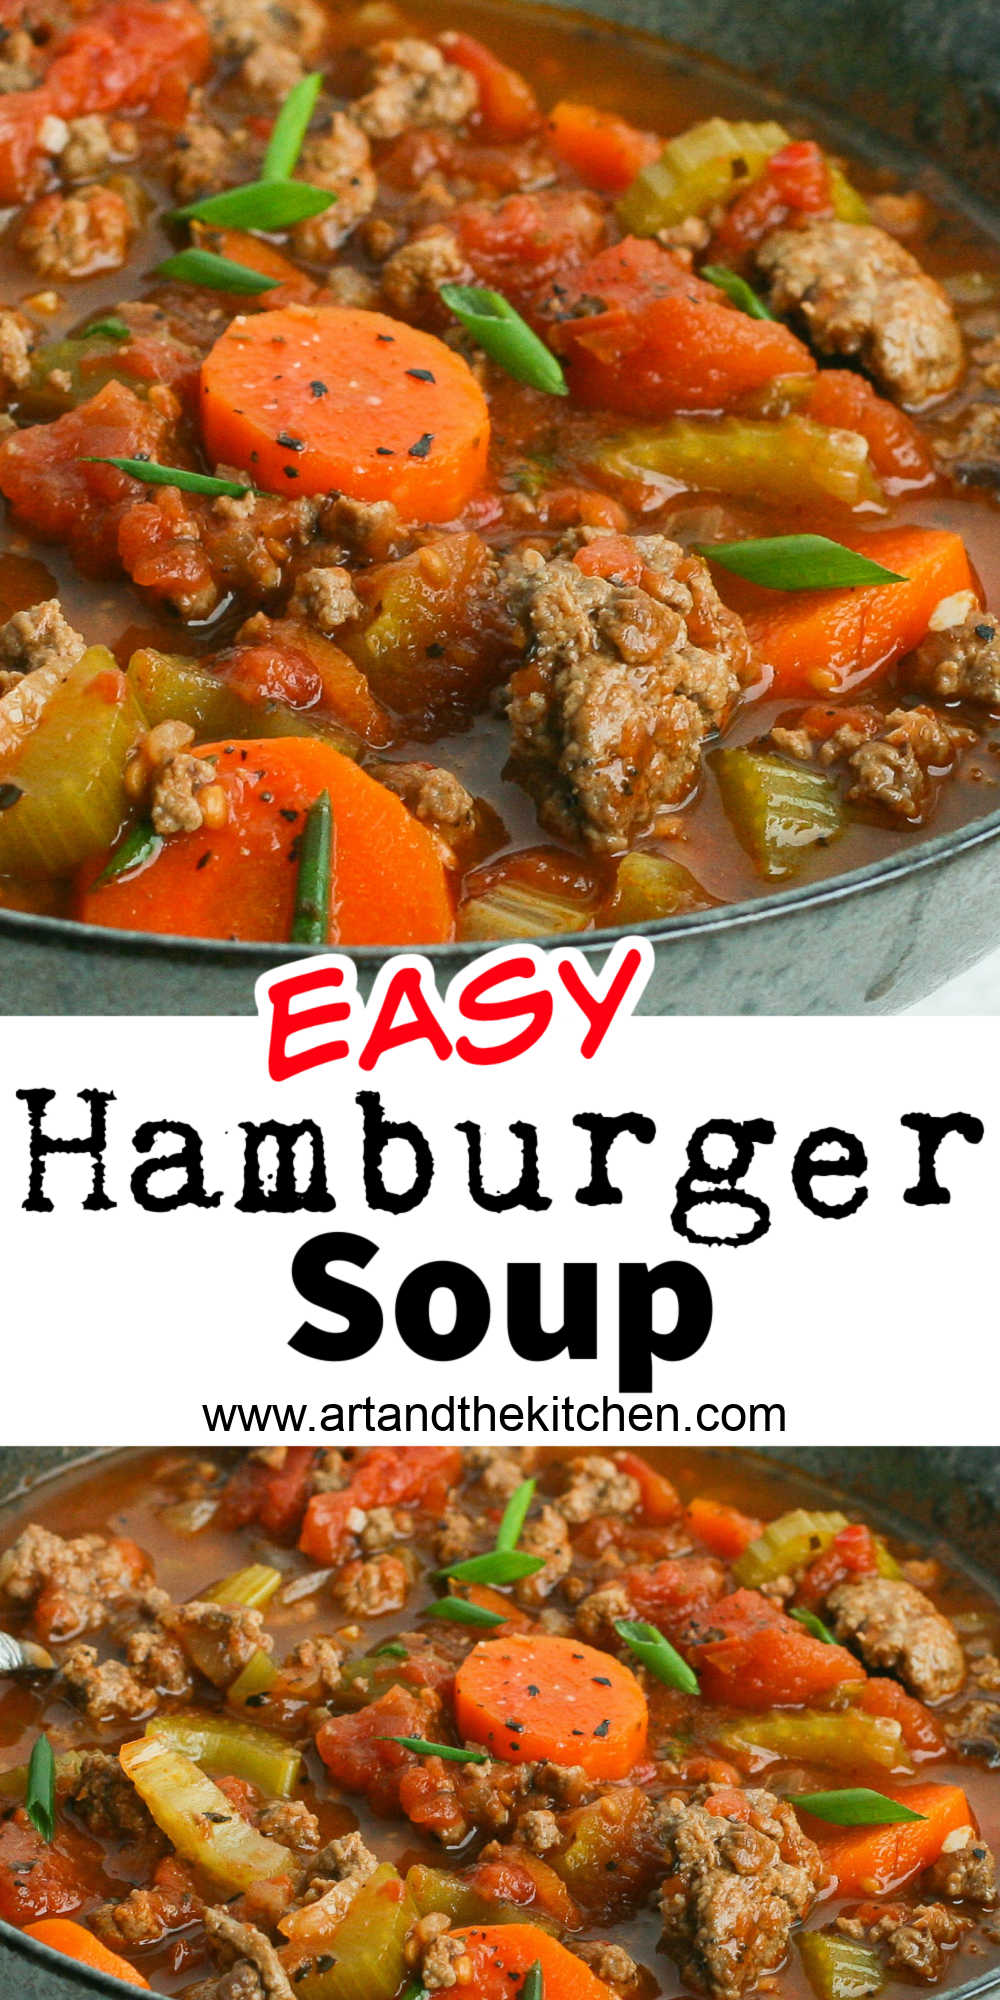 Easy Hamburger Soup is simple and quick to make with lean ground beef and a combination of savory spices. This basic soup recipe is great to put your own twist on by adding a variety of vegetables, pasta, potatoes or even rice. via @artandthekitch